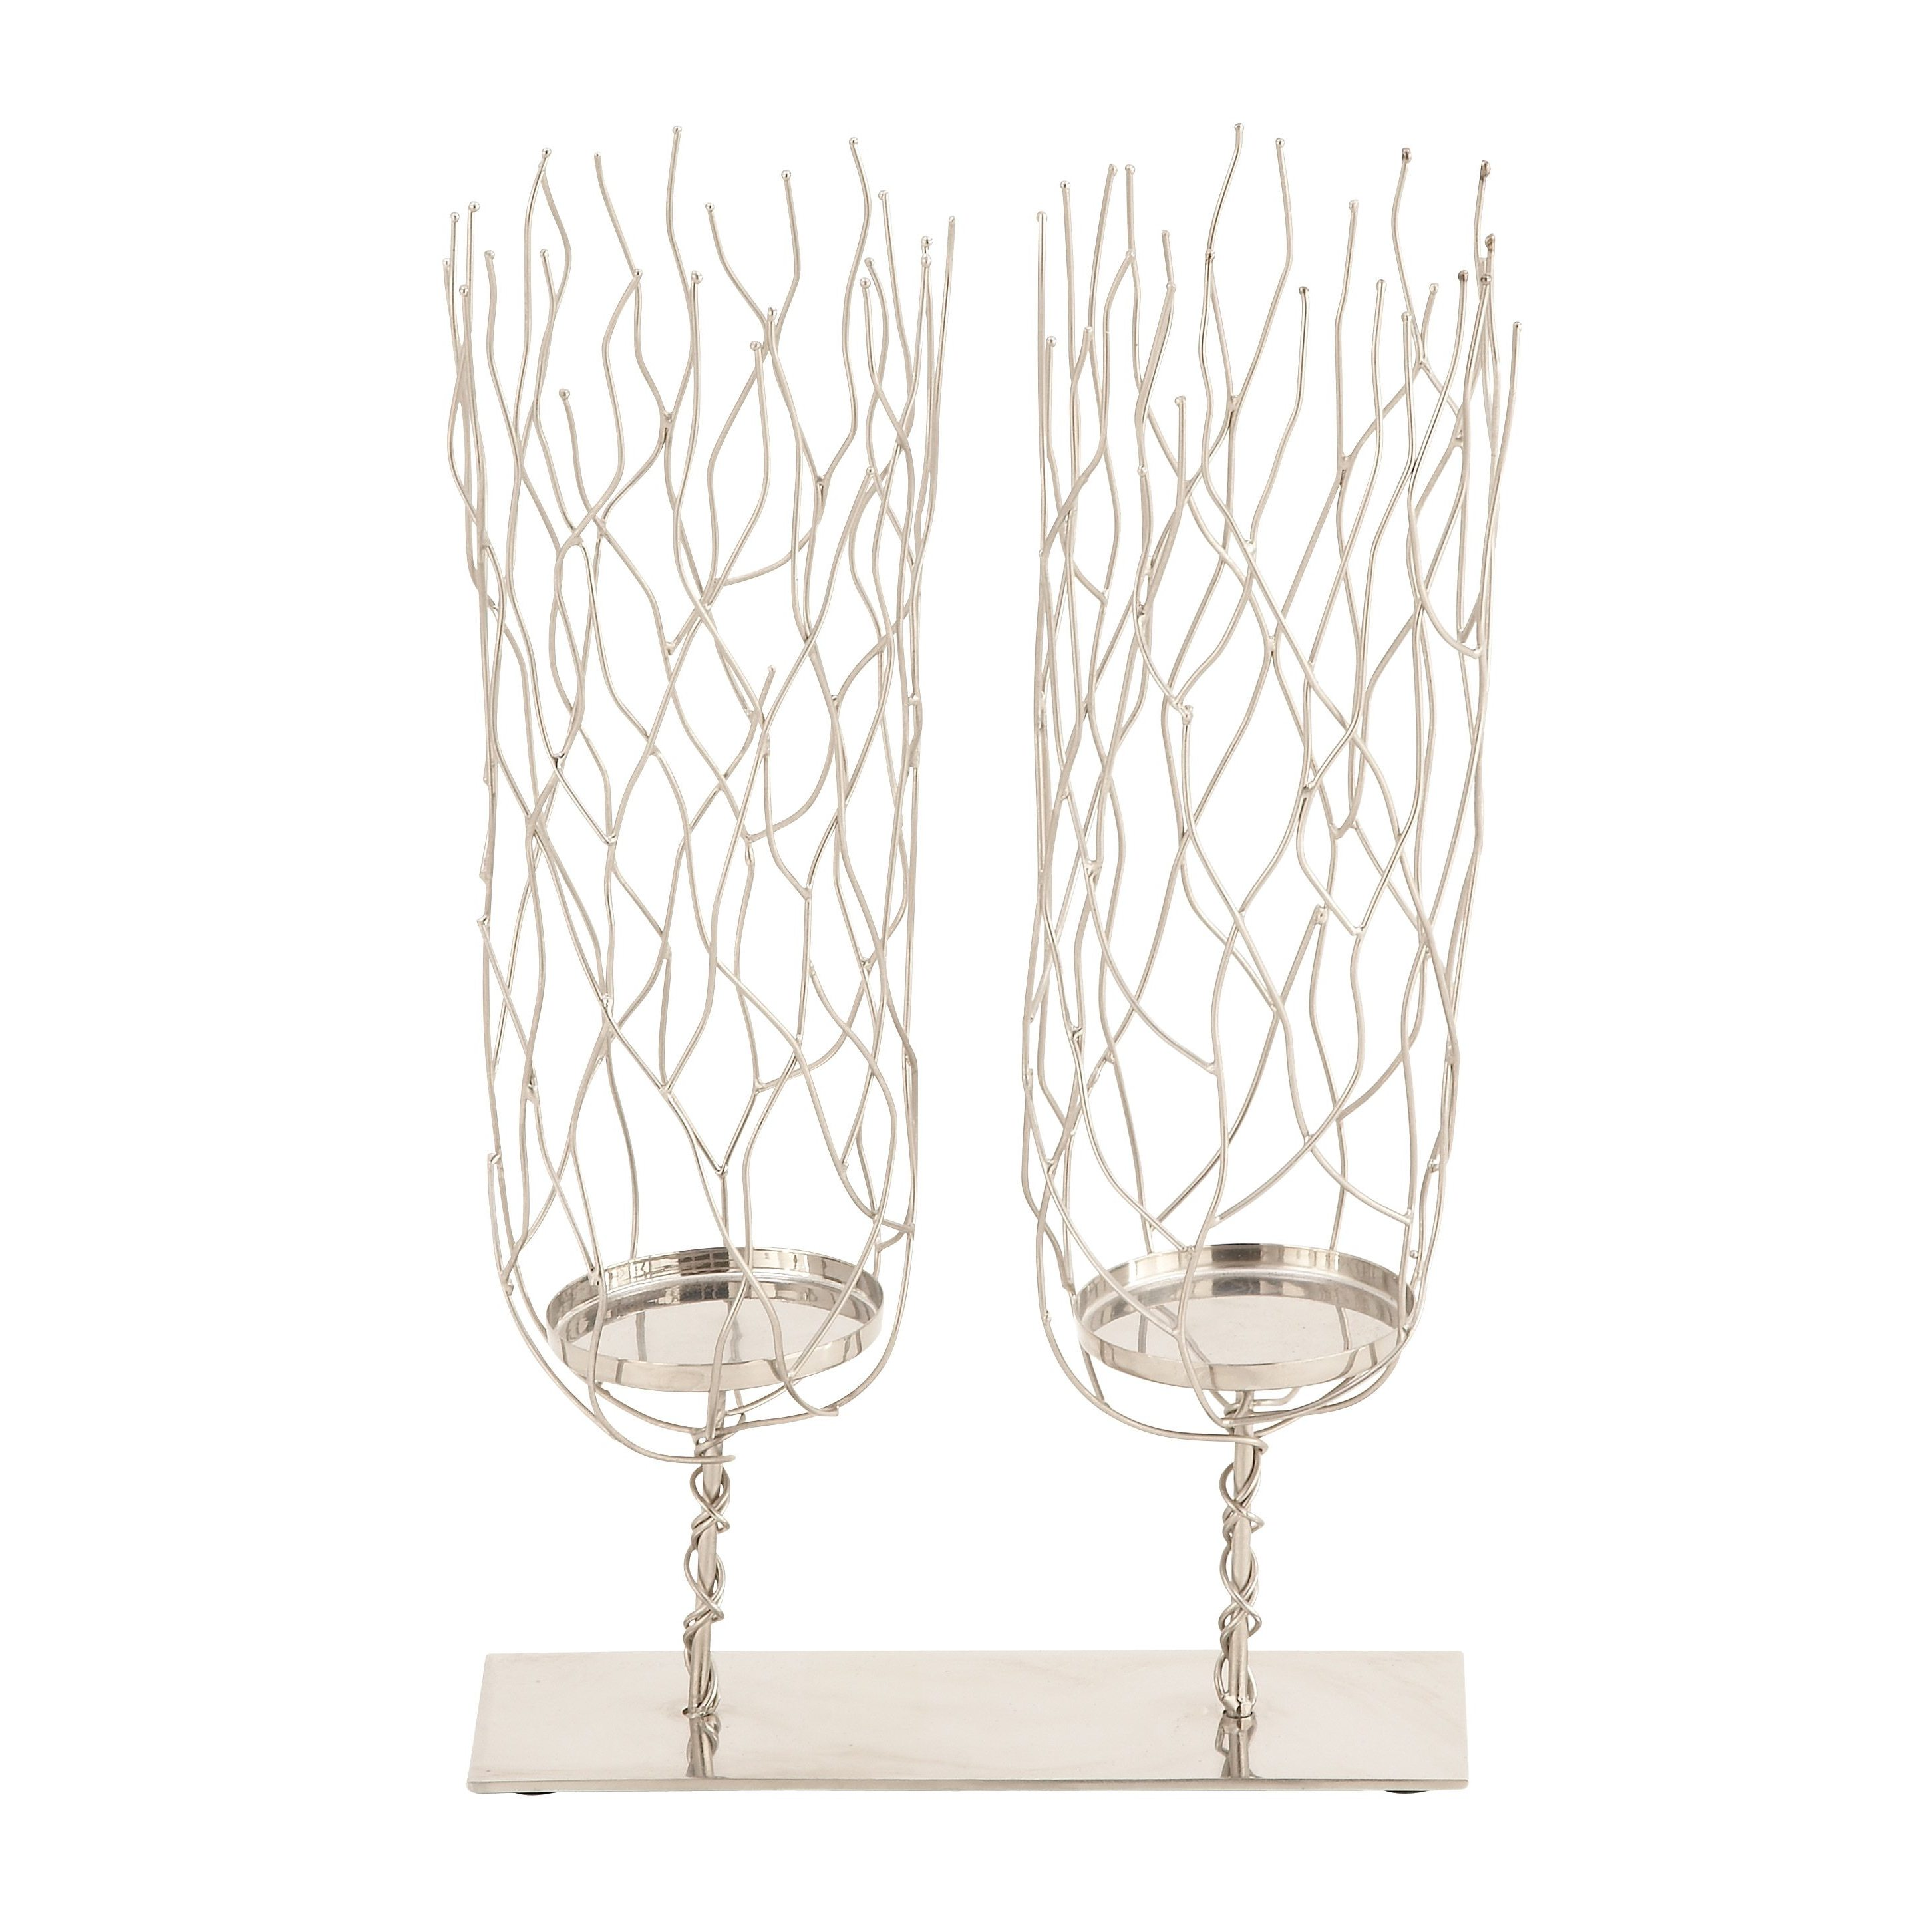 Modern Reflections Silver Stainless Steel Candleholder